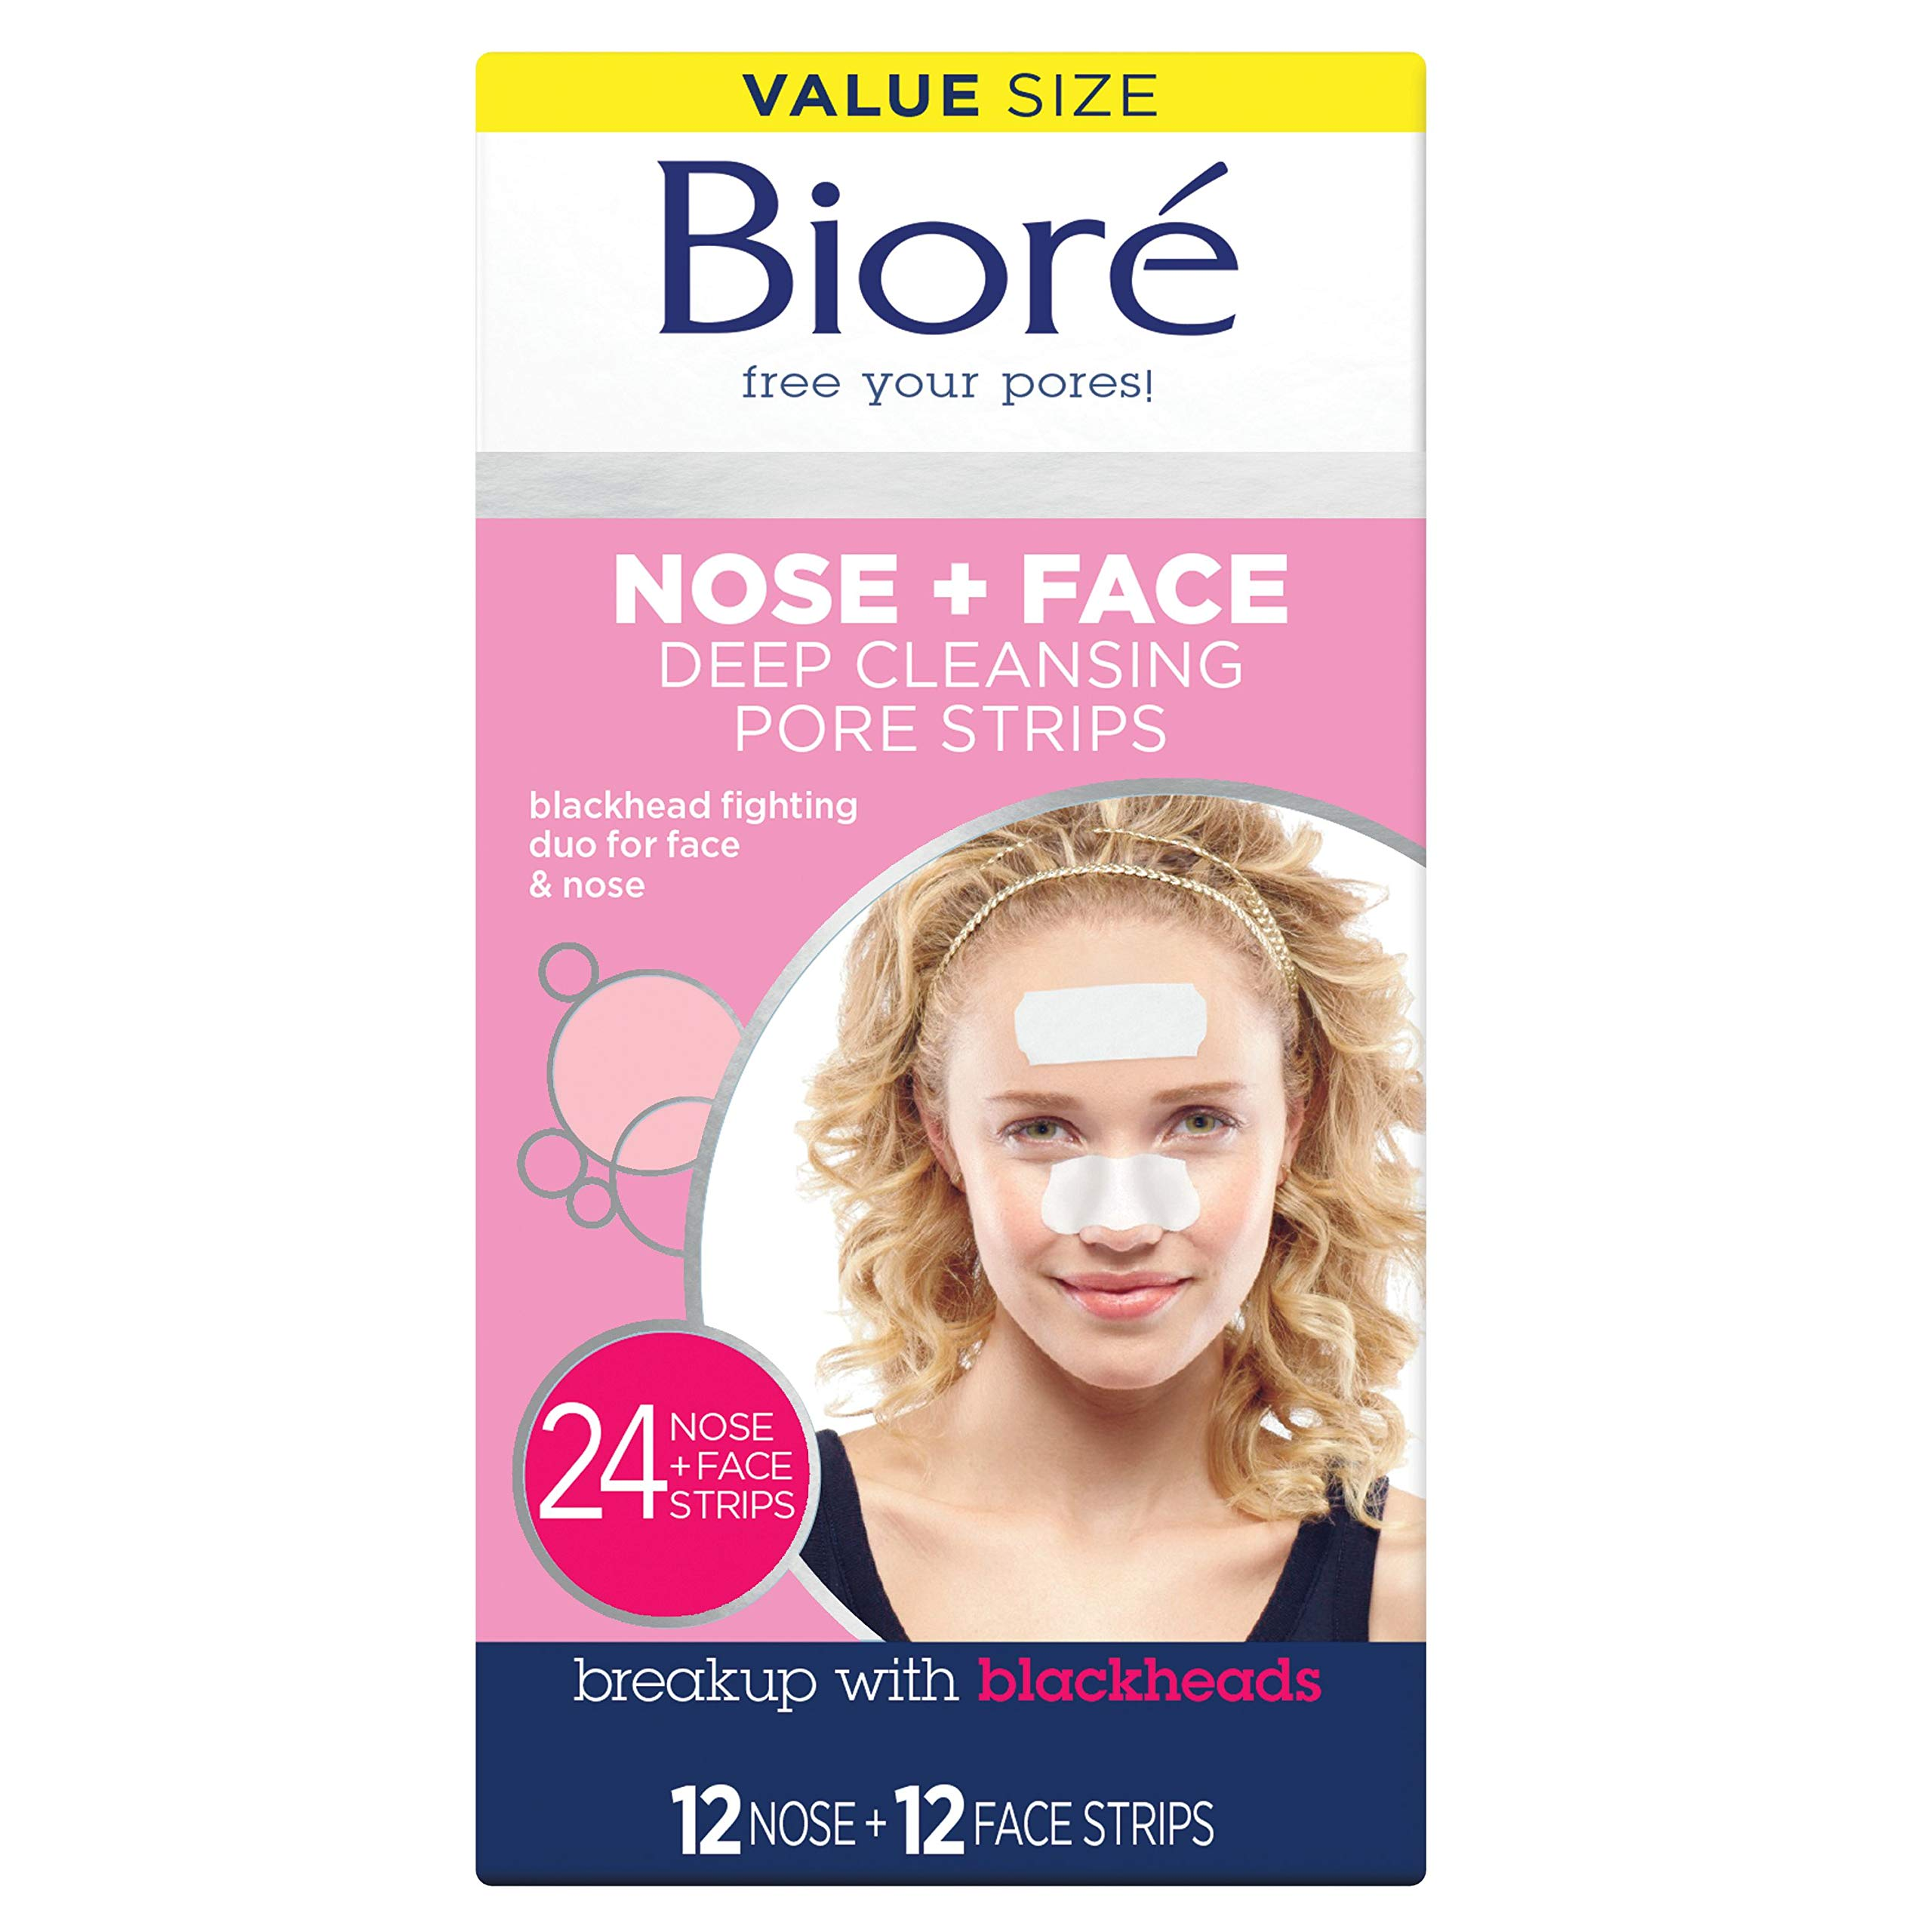 Bioré Nose+Face, Deep Cleansing Pore Strips, 24 Count Value Size, 12 Nose + 12 Face Strips for Chin or Forehead, with Instant Blackhead Removal by Bioré